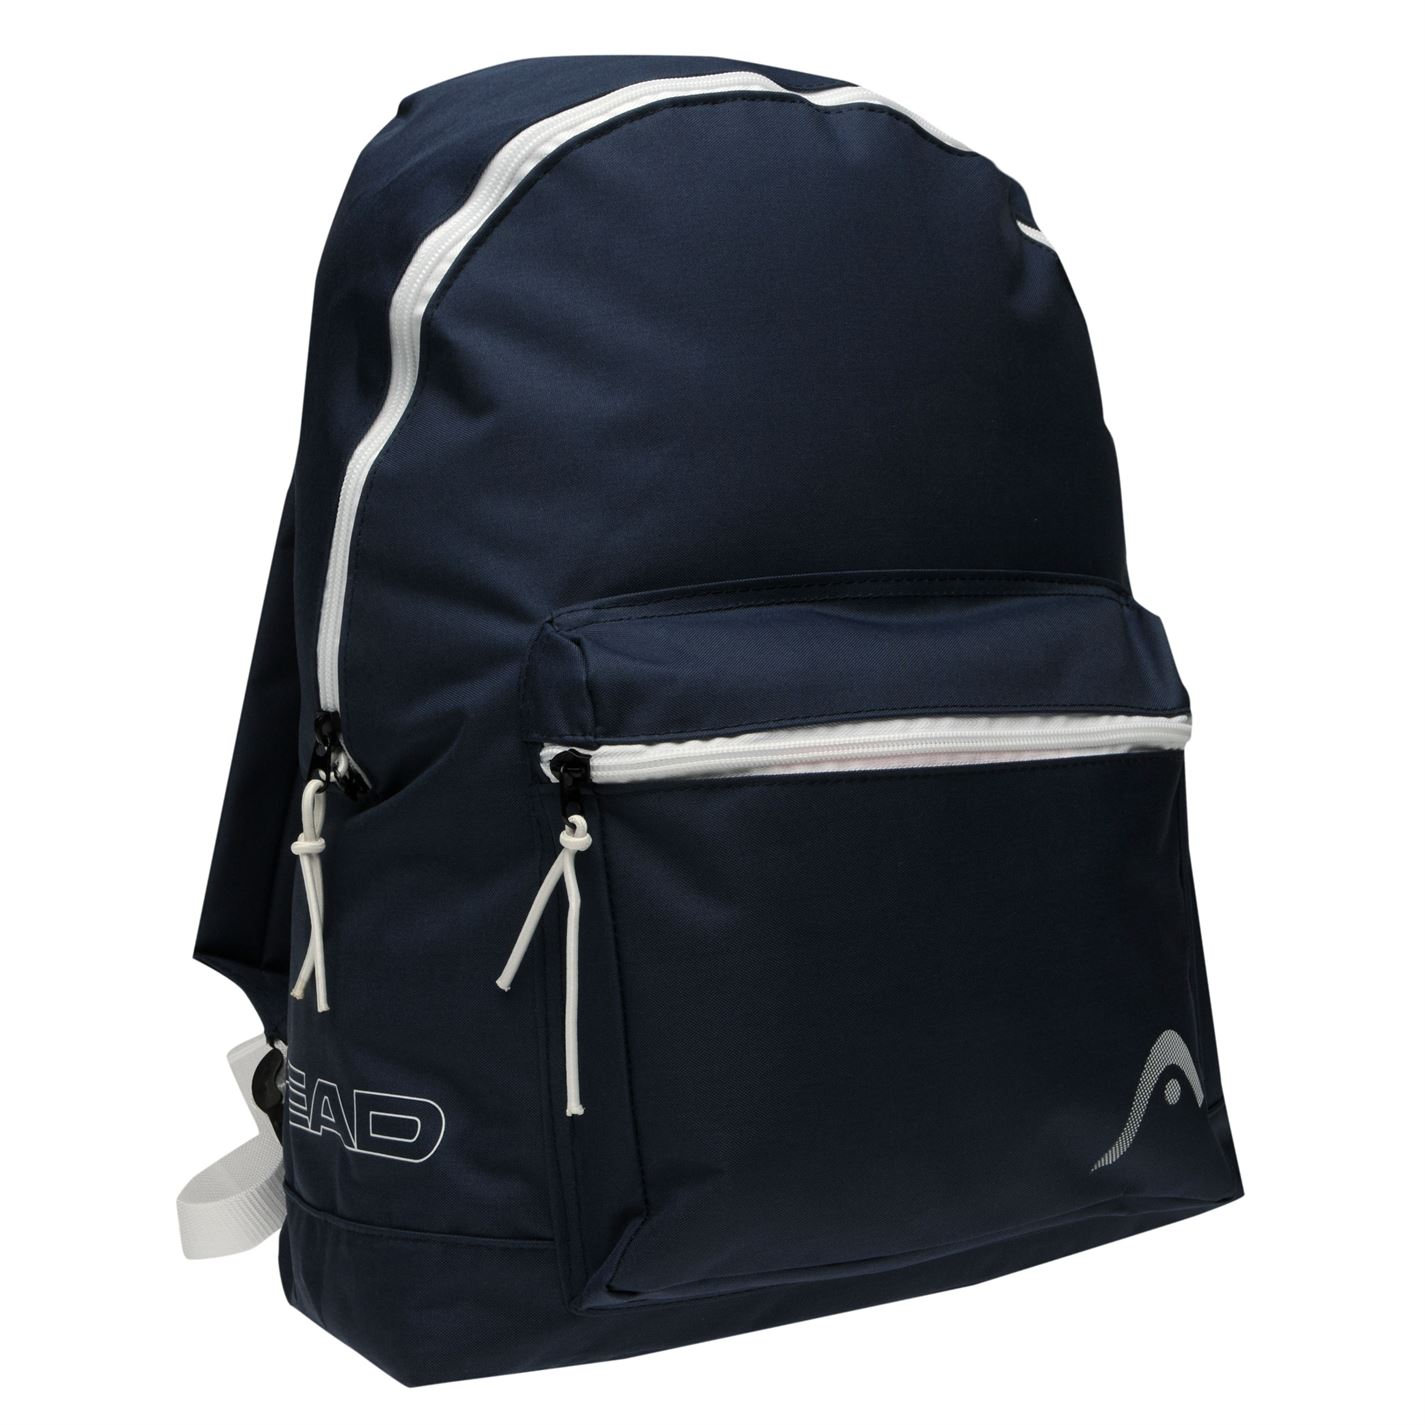 batoh HEAD ZEST - NAVY/WHITE